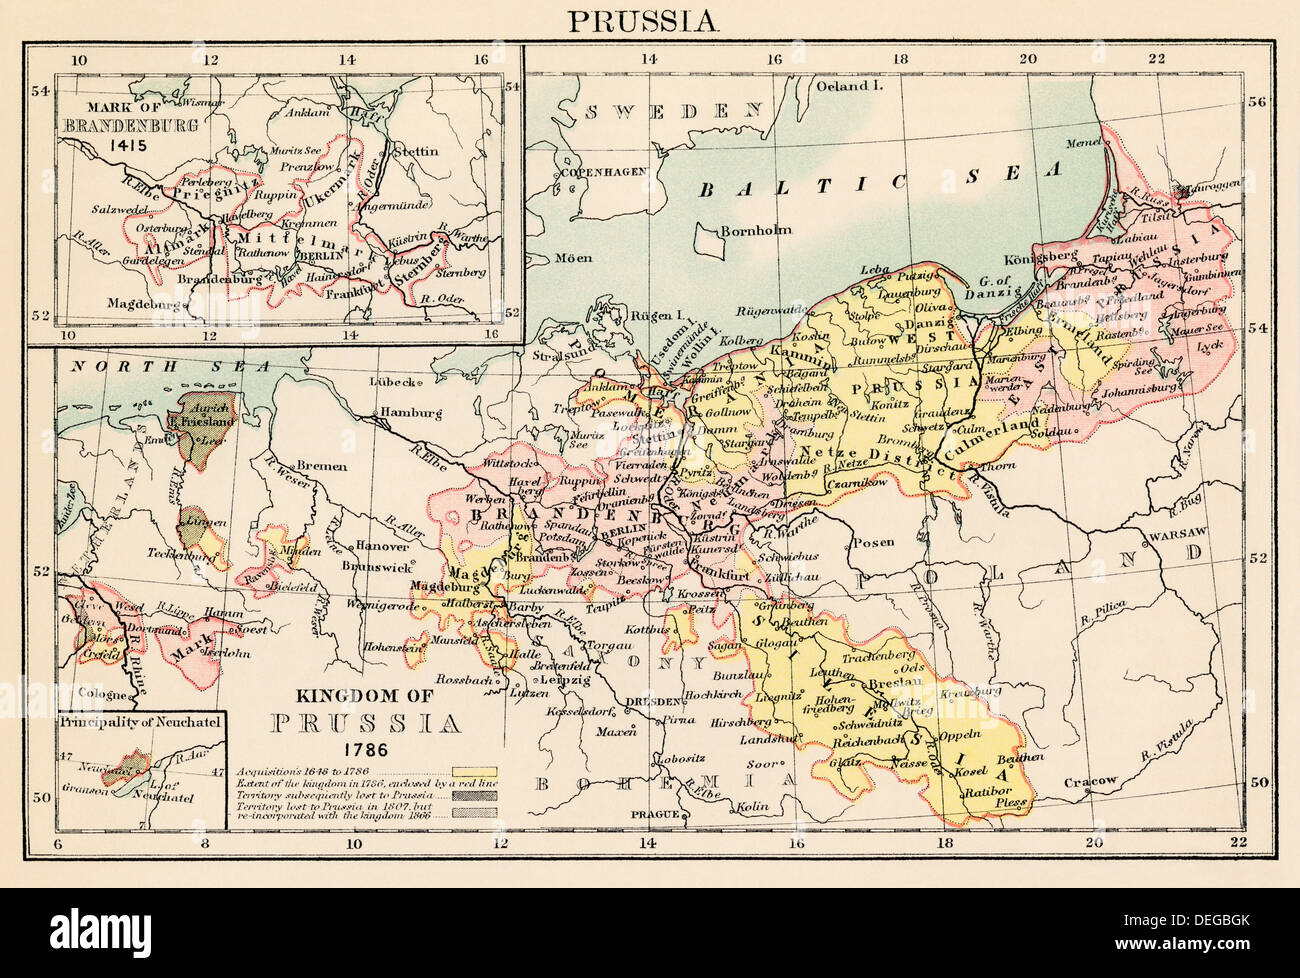 Map of the Kingdom of Prussia in 1786 and Brandenburg in 1415 Stock